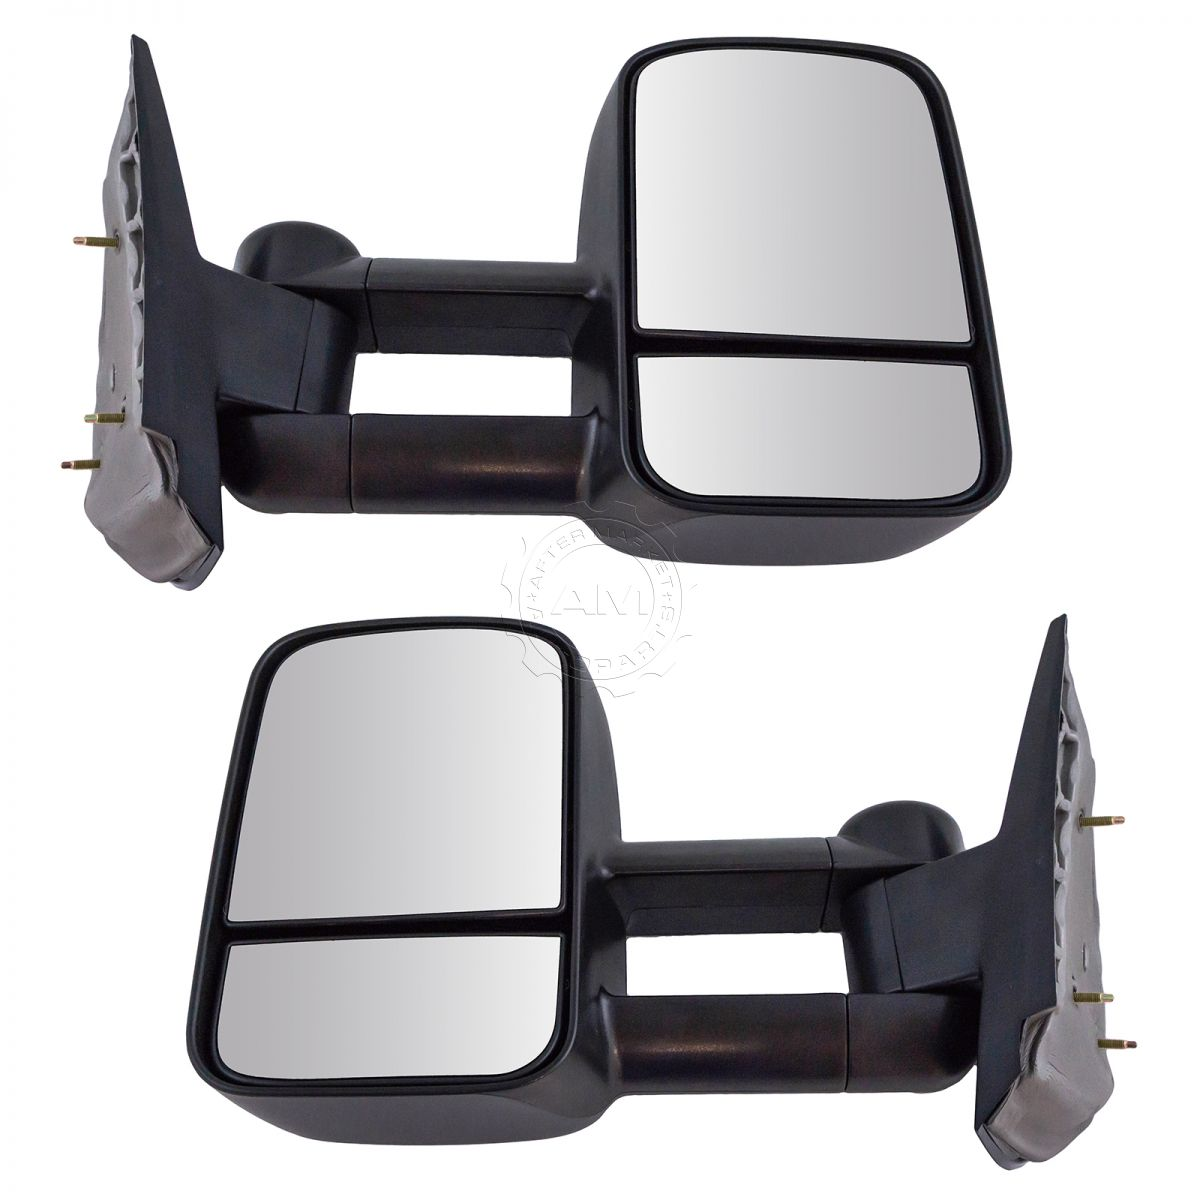 hight resolution of towing mirror manual textured black pair for chevy silverado gmc sierra pickup